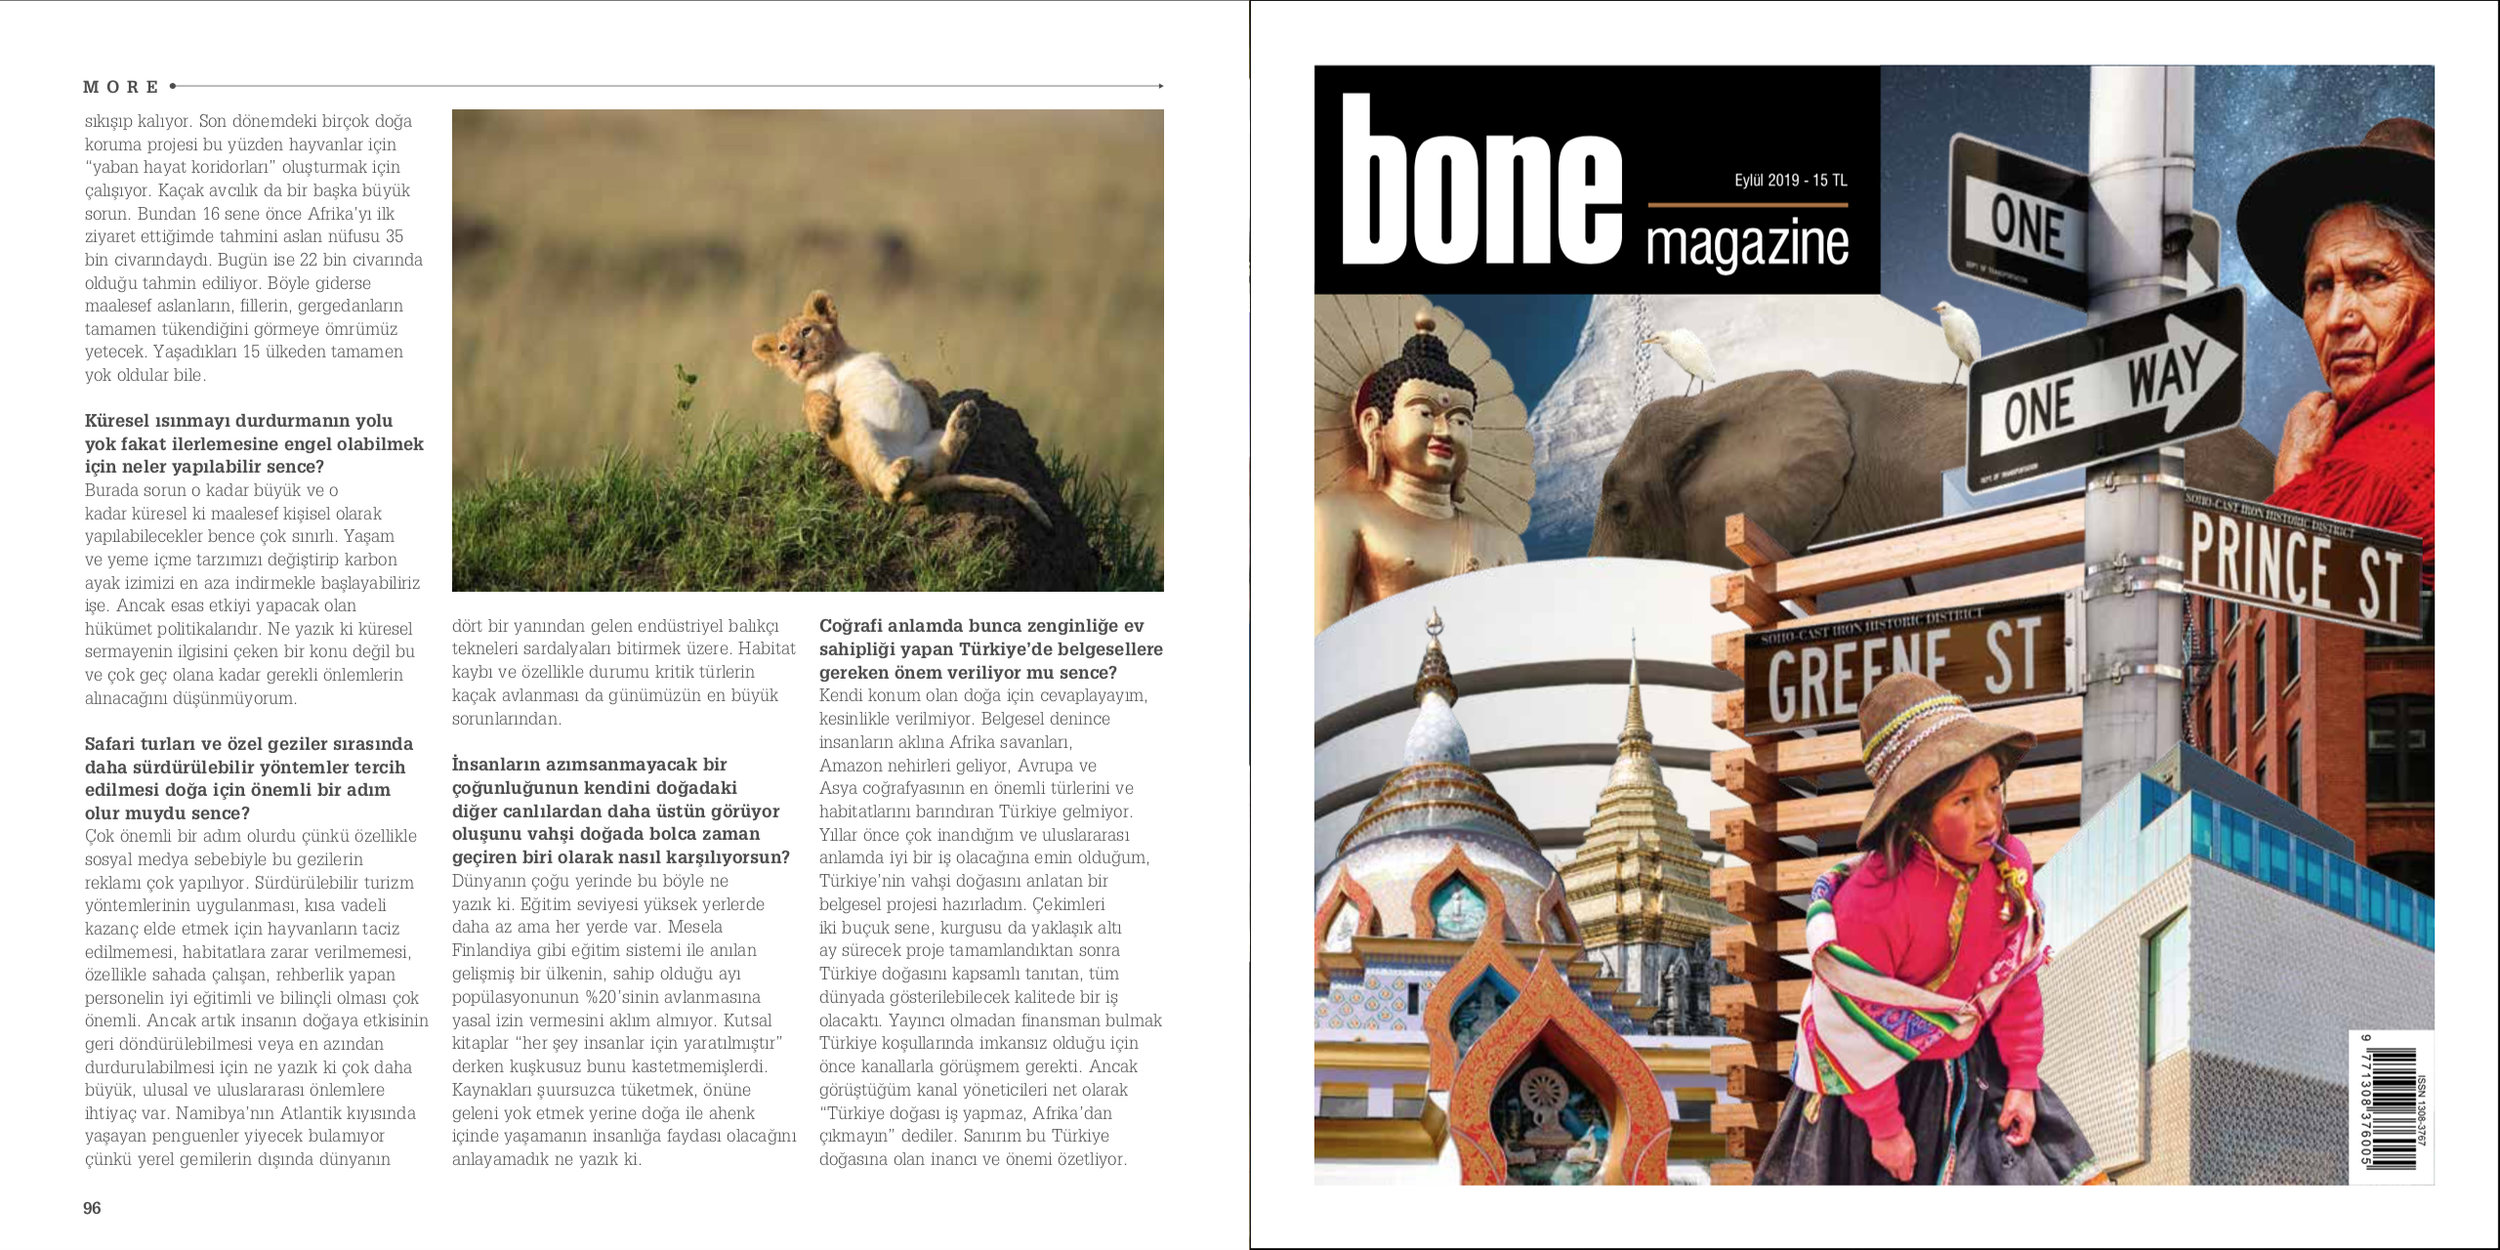 Bone Magazine   September 2019 | Page 94 - 95 - 96   Interview about wildlife filmmaking, nature & climate change